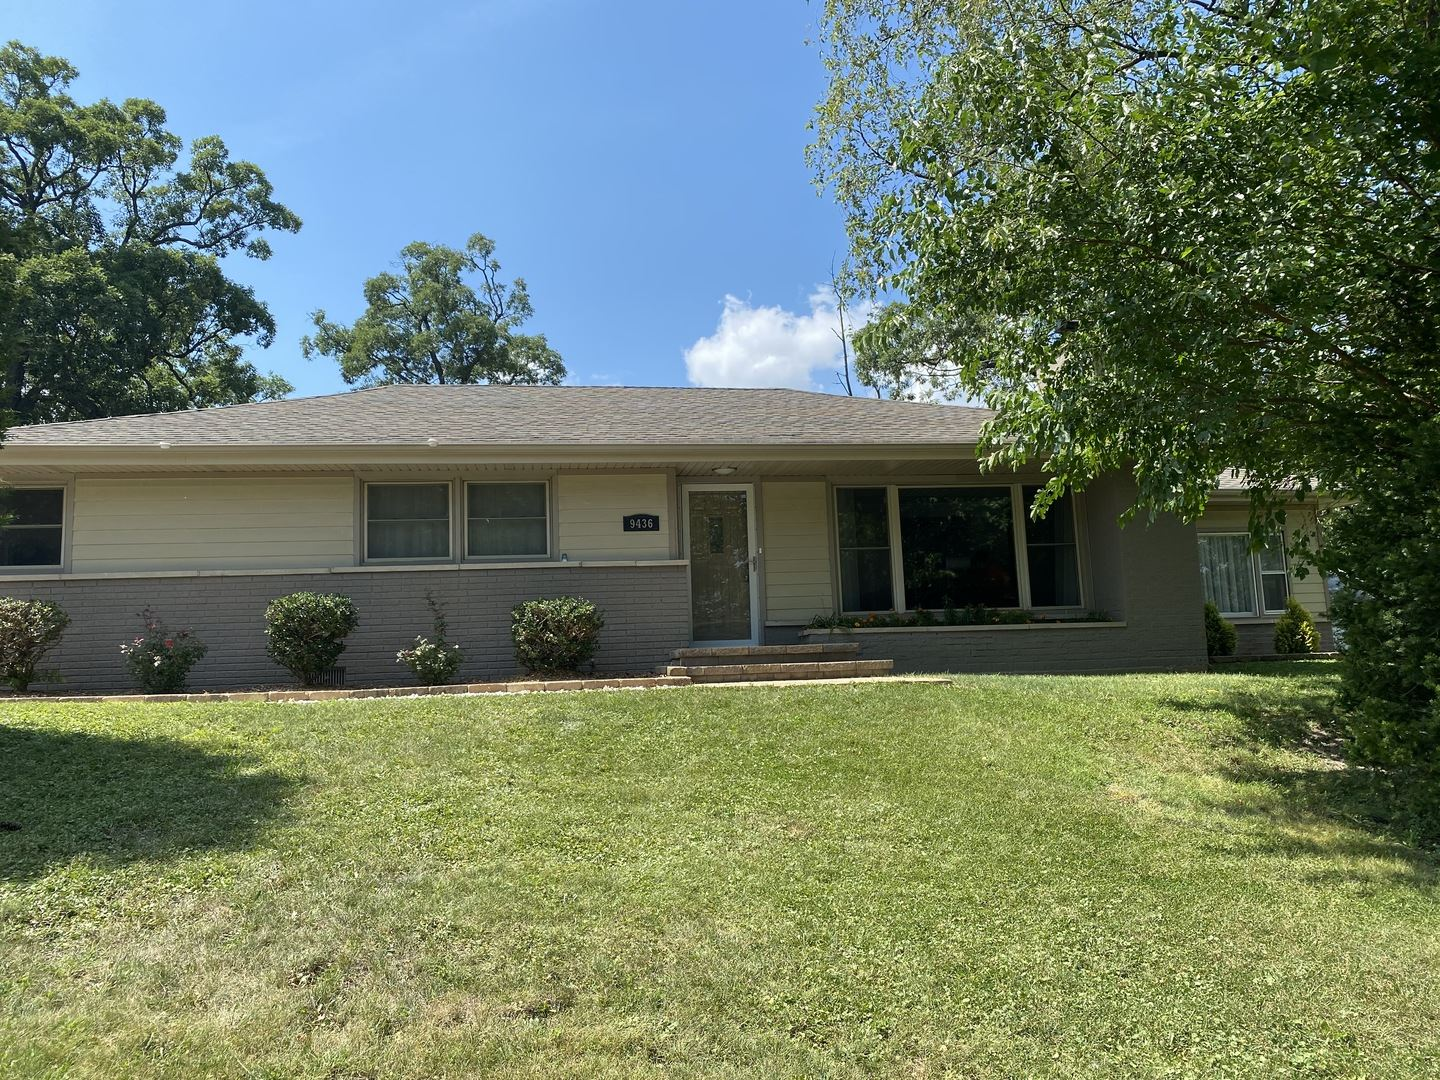 9436 S 82nd Court, Hickory Hills, IL 60457 - #: 10813060